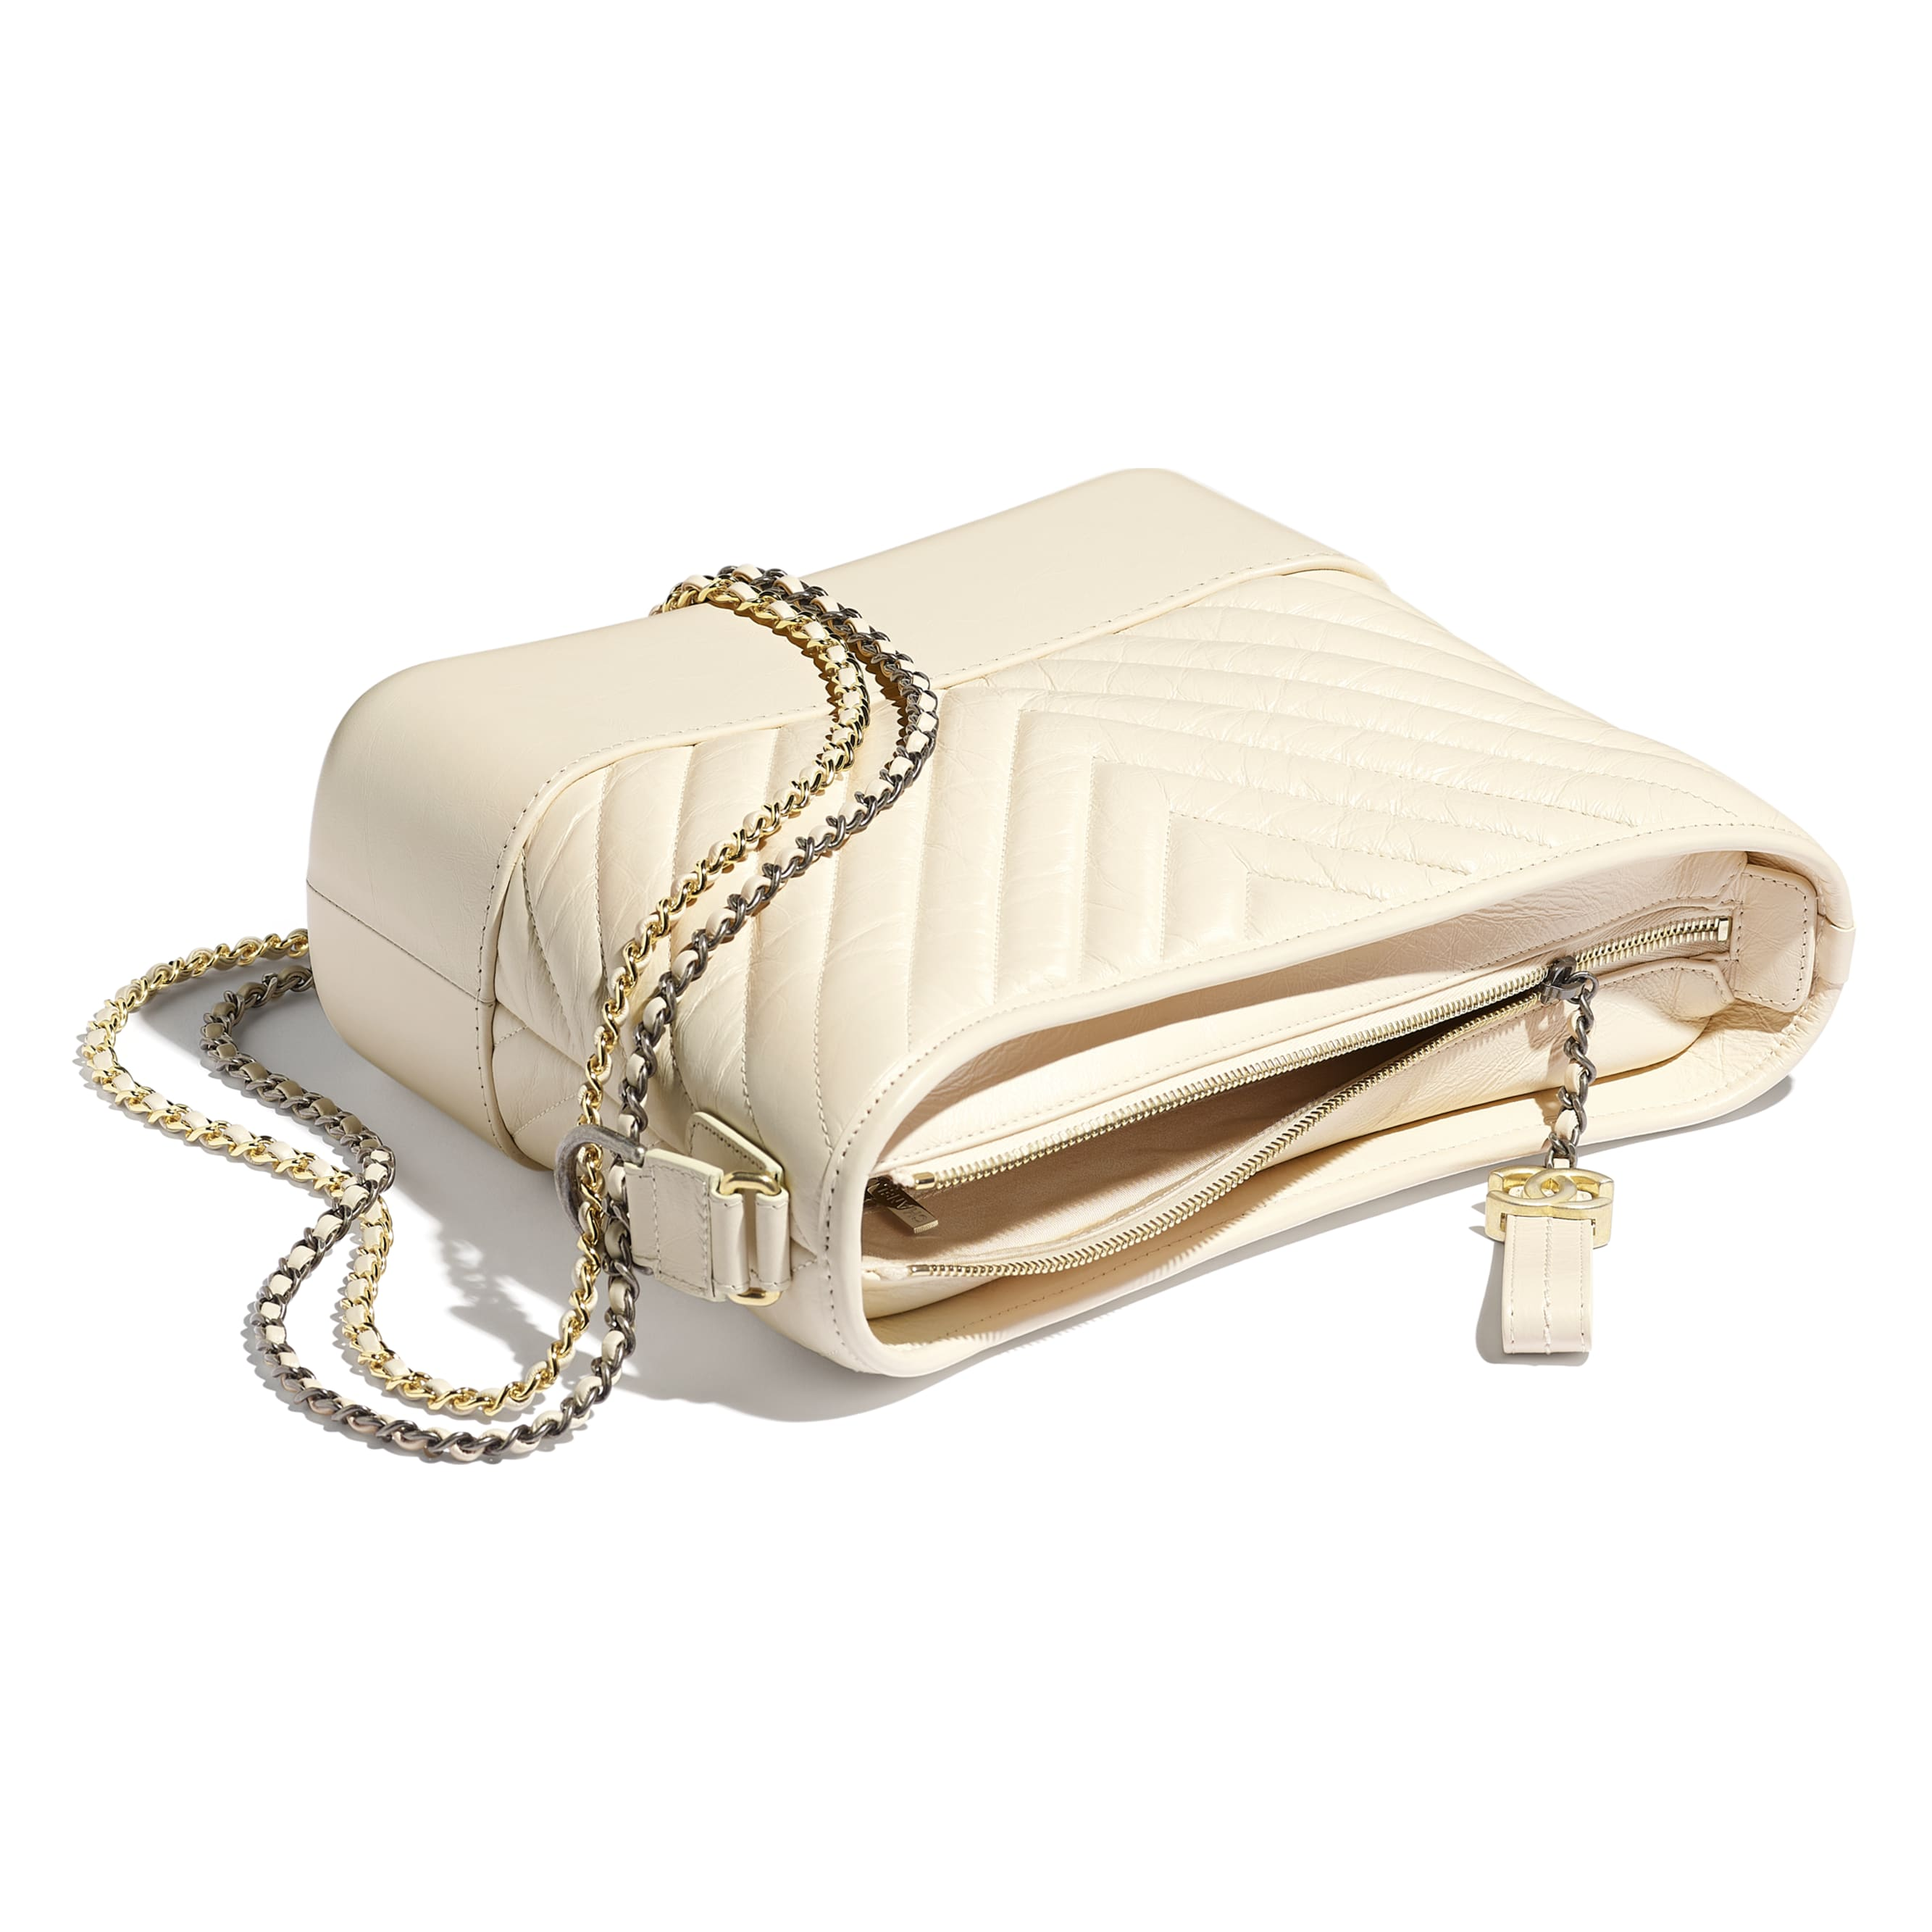 CHANEL'S GABRIELLE Large Hobo Bag - Light Beige - Aged Calfskin, Smooth Calfskin, Gold-Tone, Silver-Tone & Ruthenium-Finish Metal - CHANEL - Other view - see standard sized version